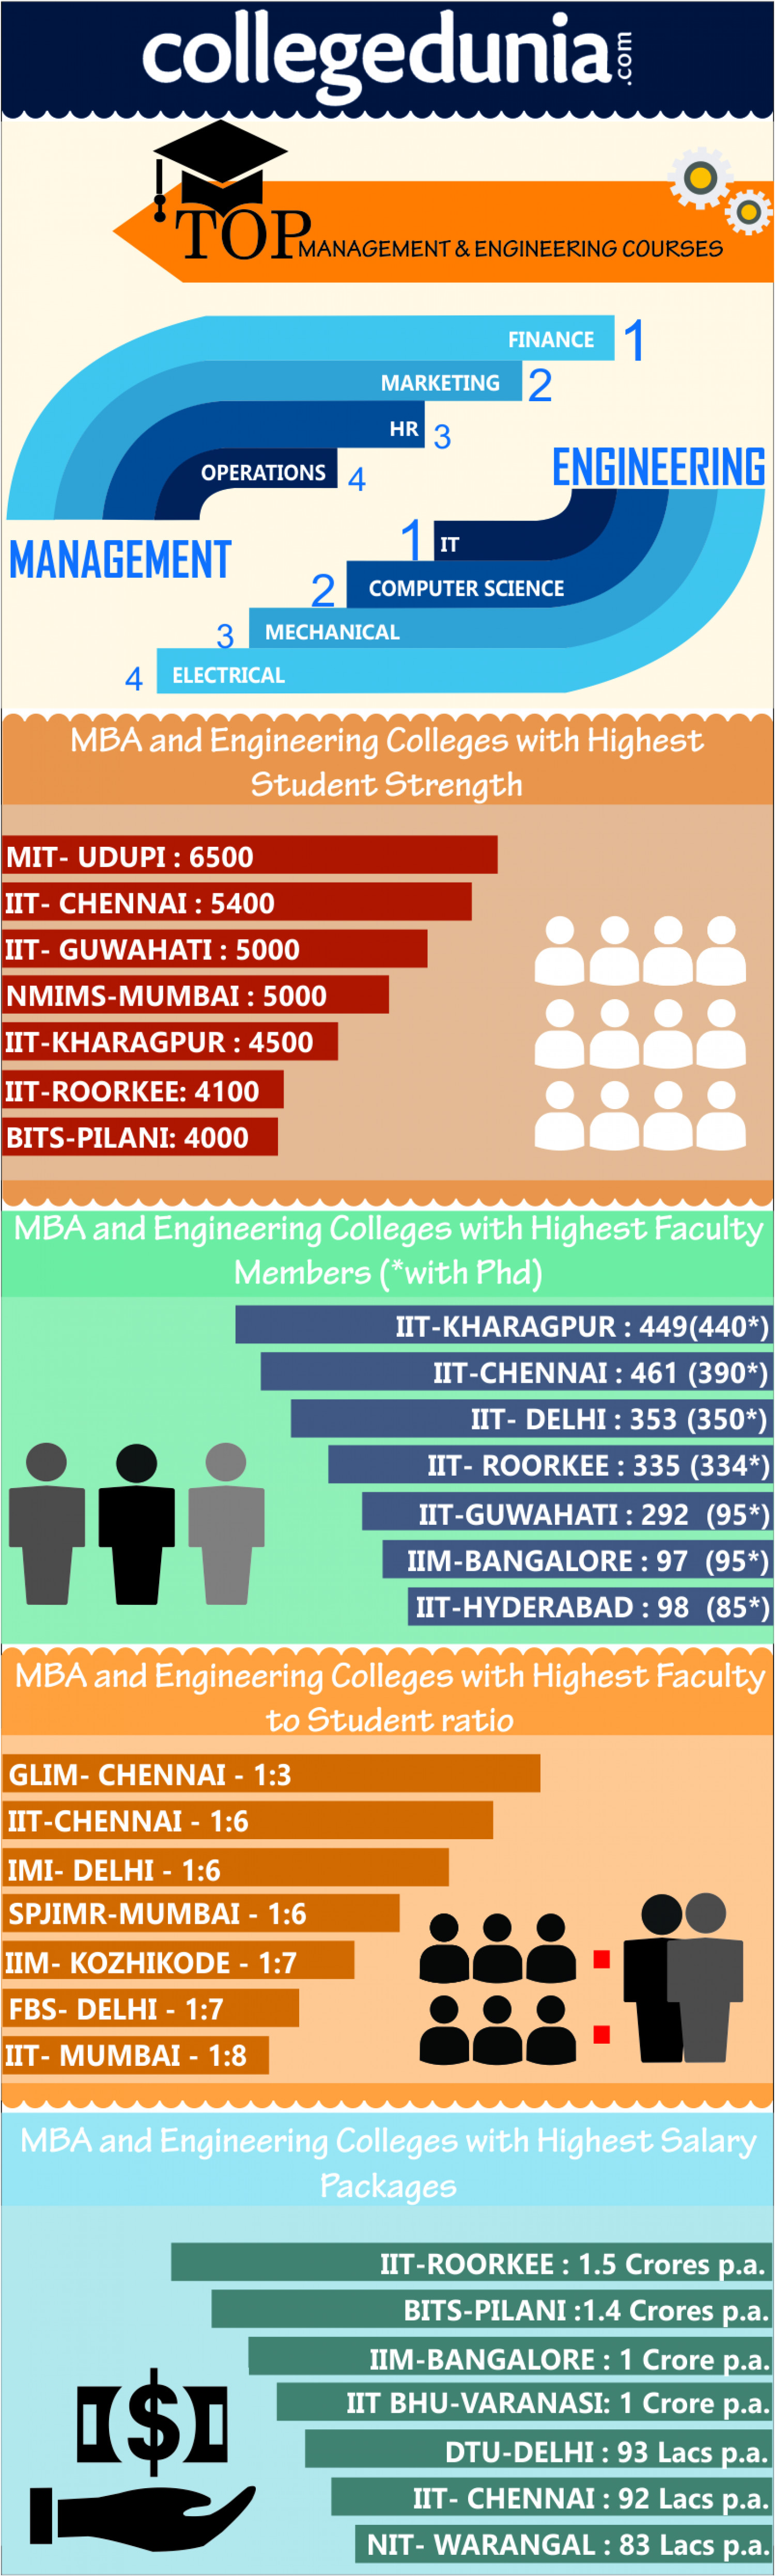 Top Management and Engineering Colleges in India Infographic